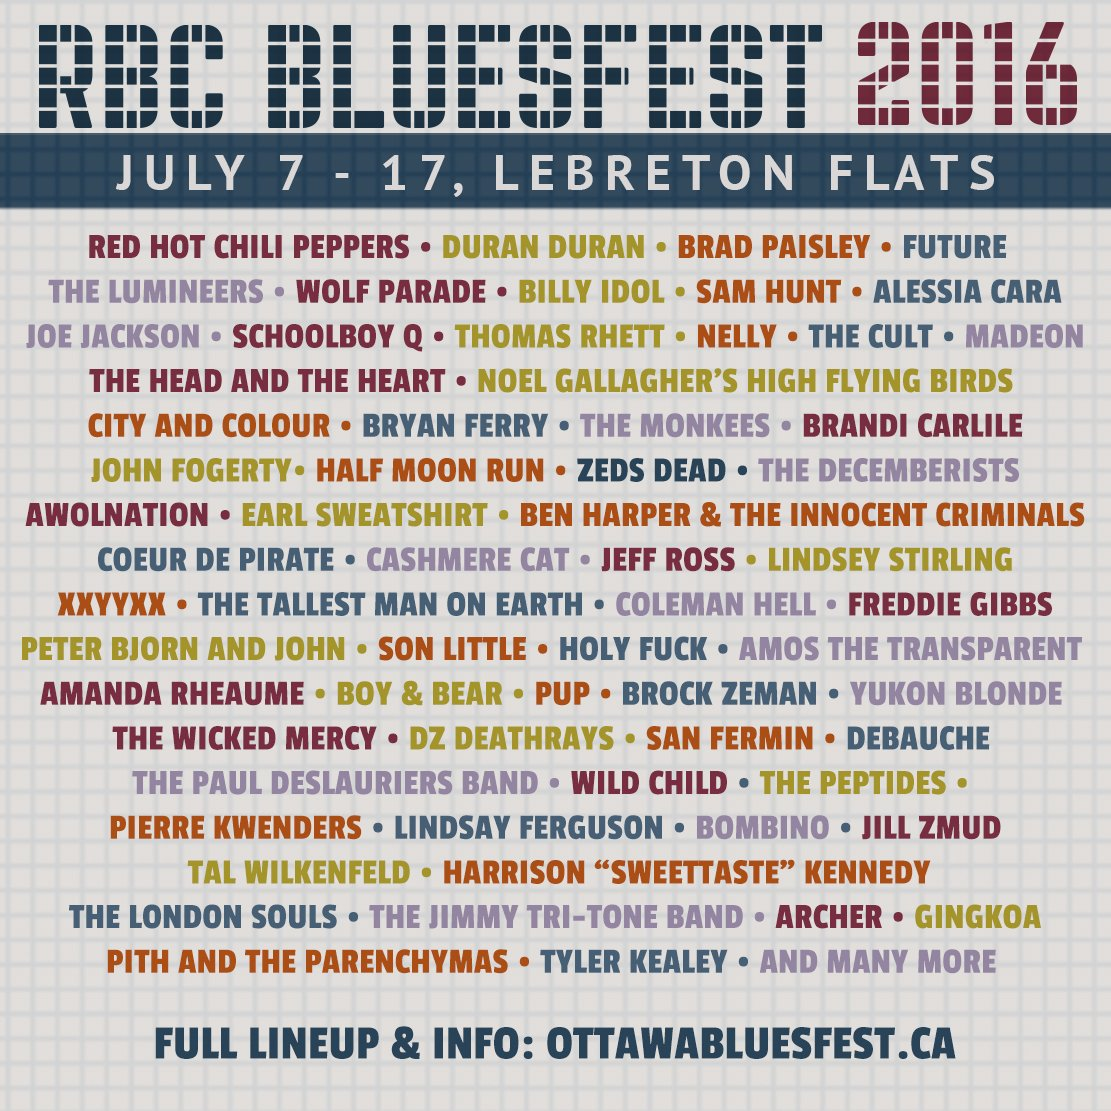 #RBCBluesfest2016 ottawabluesfest.ca for full lineup and more info https://t.co/Vc8zGMHDSA